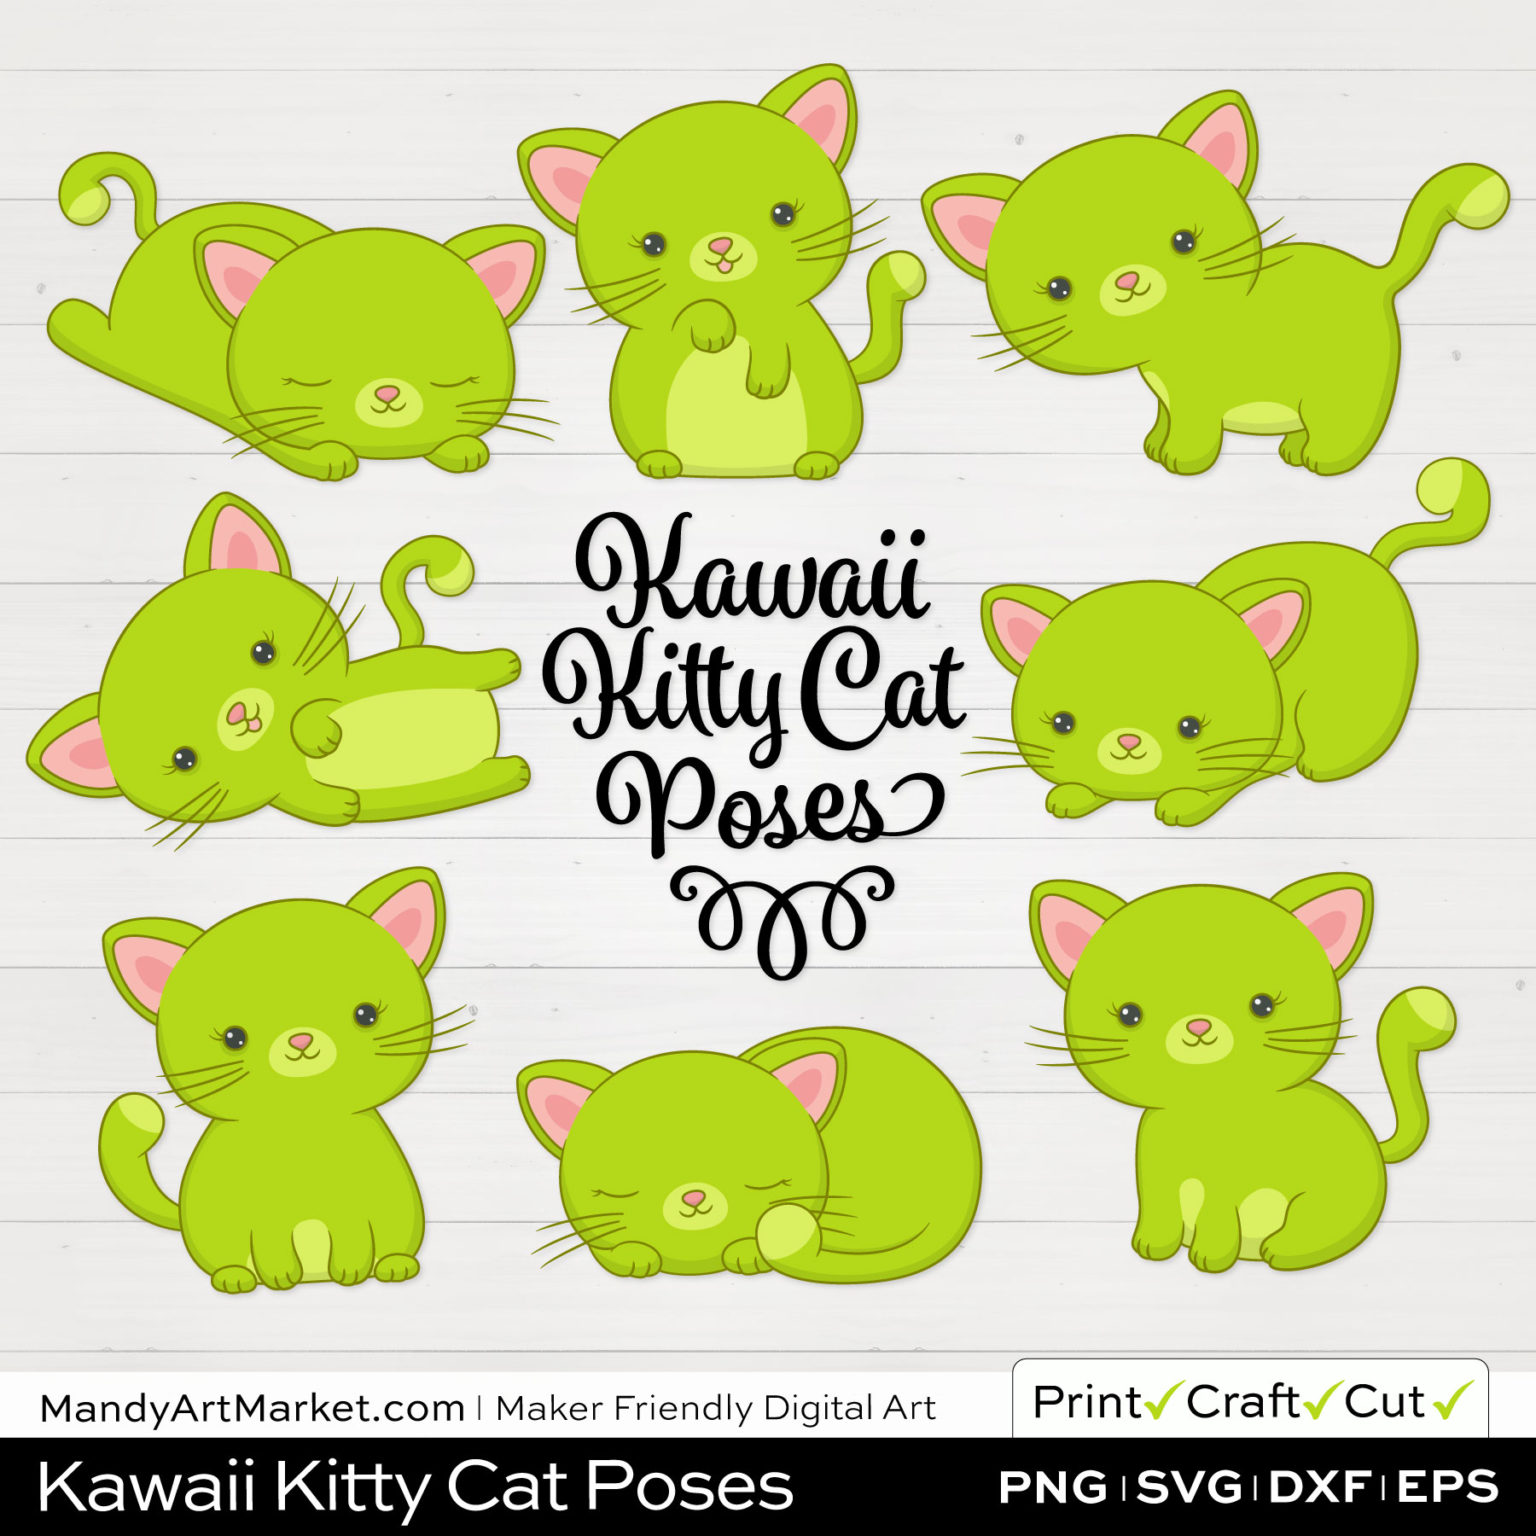 Chartreuse Green Kawaii Kitty Cat Poses Clipart on White Background